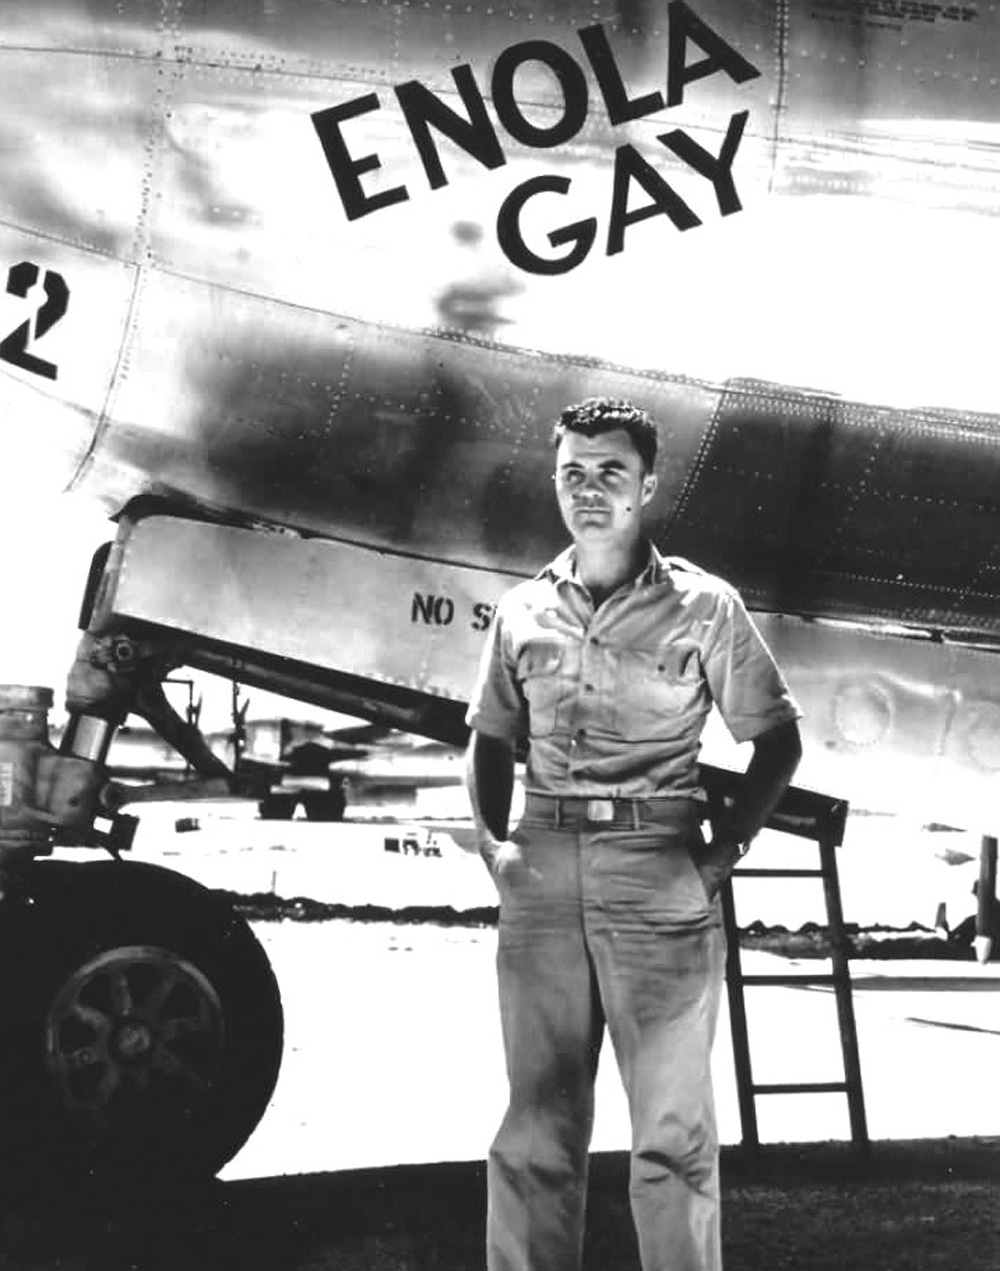 "Paul Tibbets: A Rendezvous with History<br>Feb. 23,1915 ""Flown West"" Nov 1, 2007"